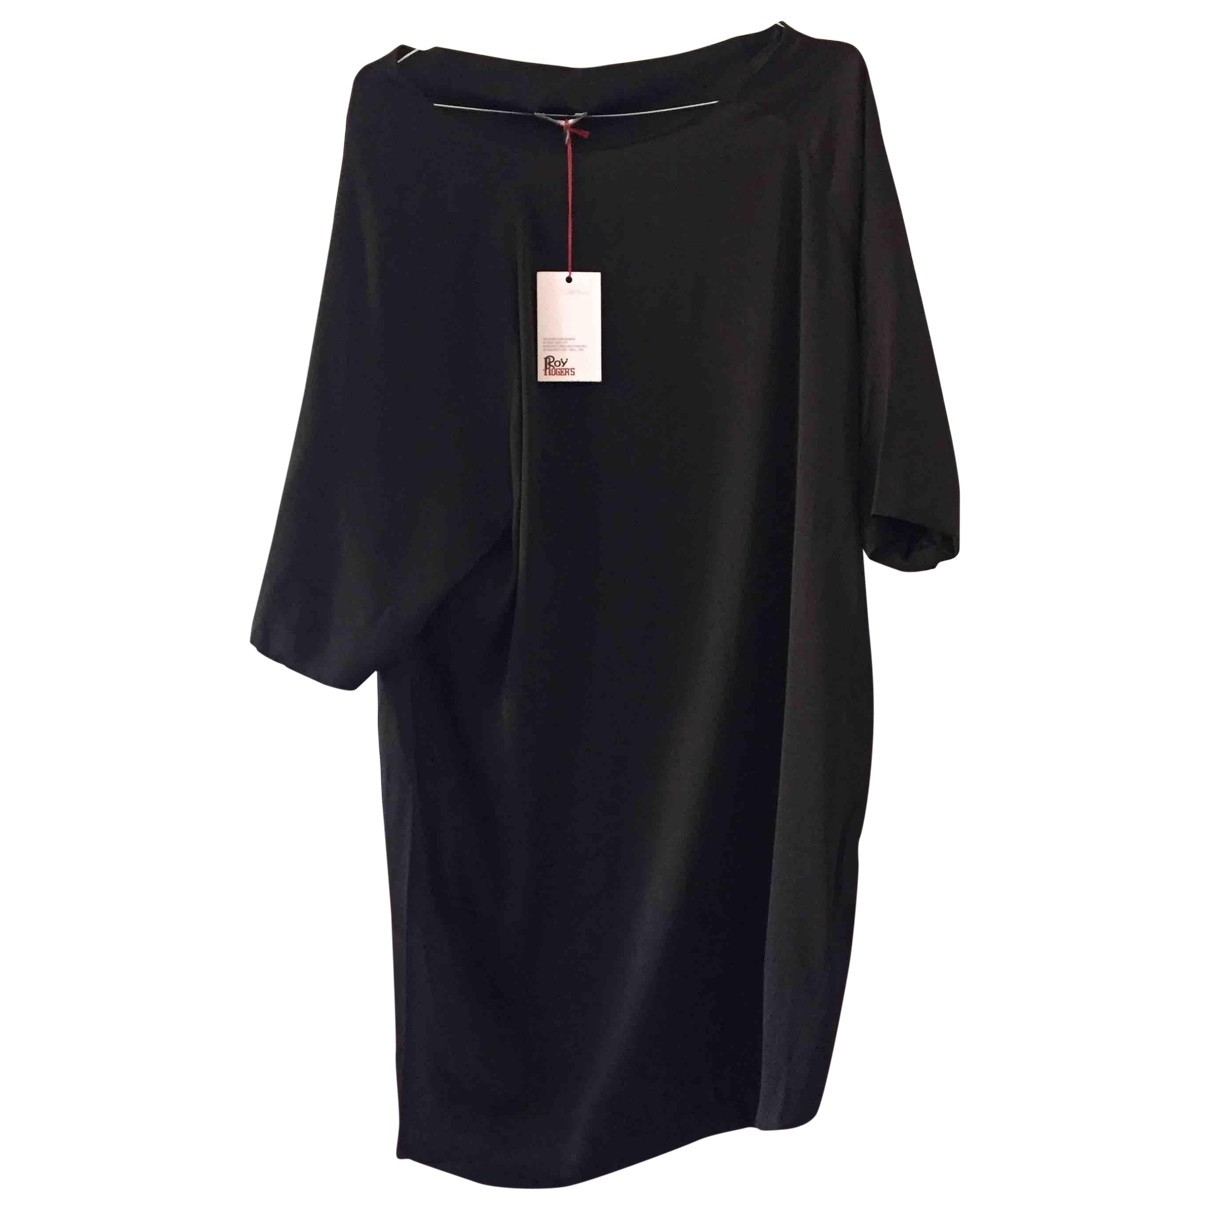 Roy Roger's \N Black Silk dress for Women 40 IT